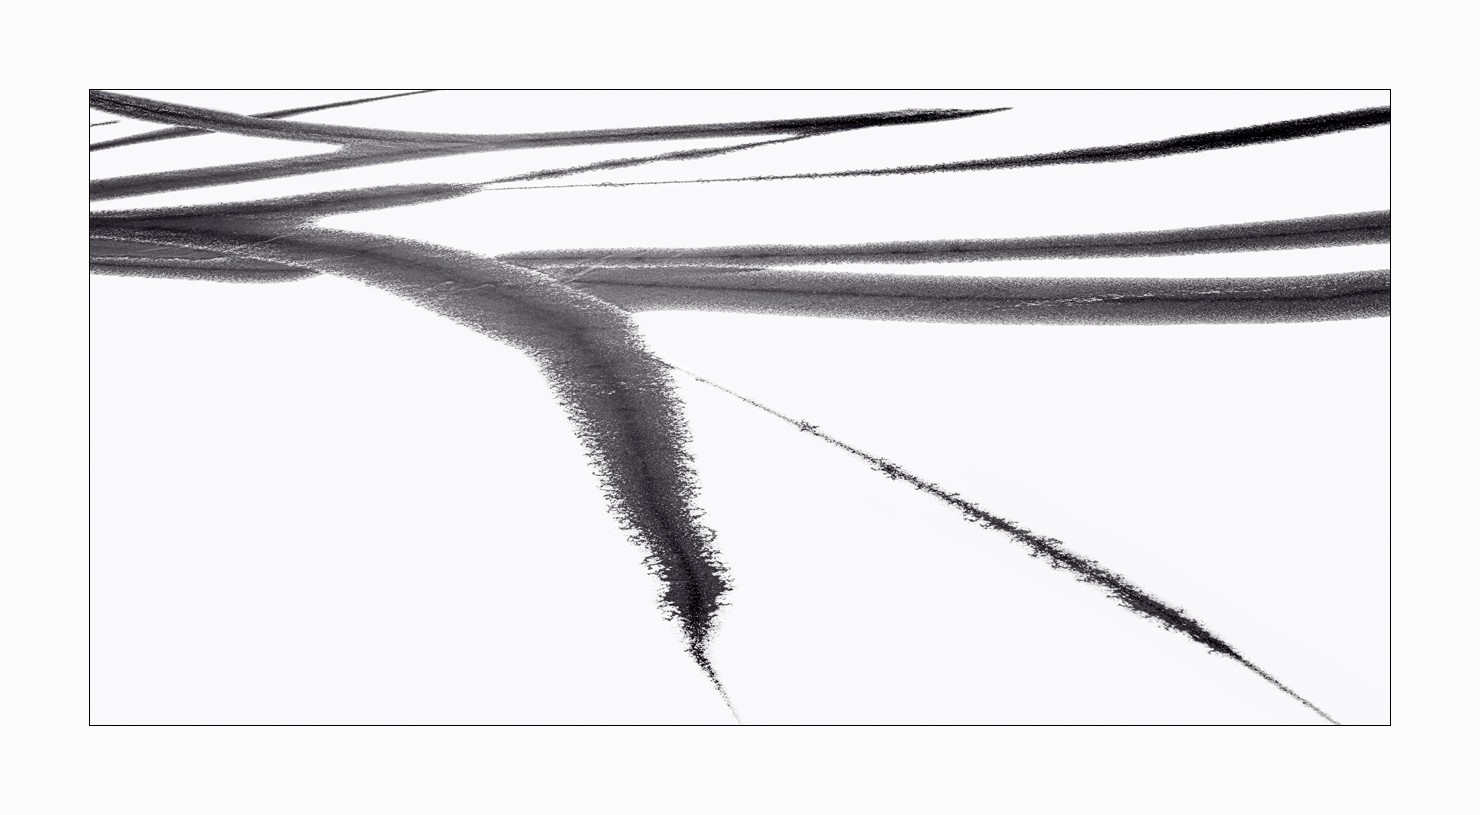 Fine art image of calligraphy-like strokes on a frozen Lake Myvatn in Iceland.